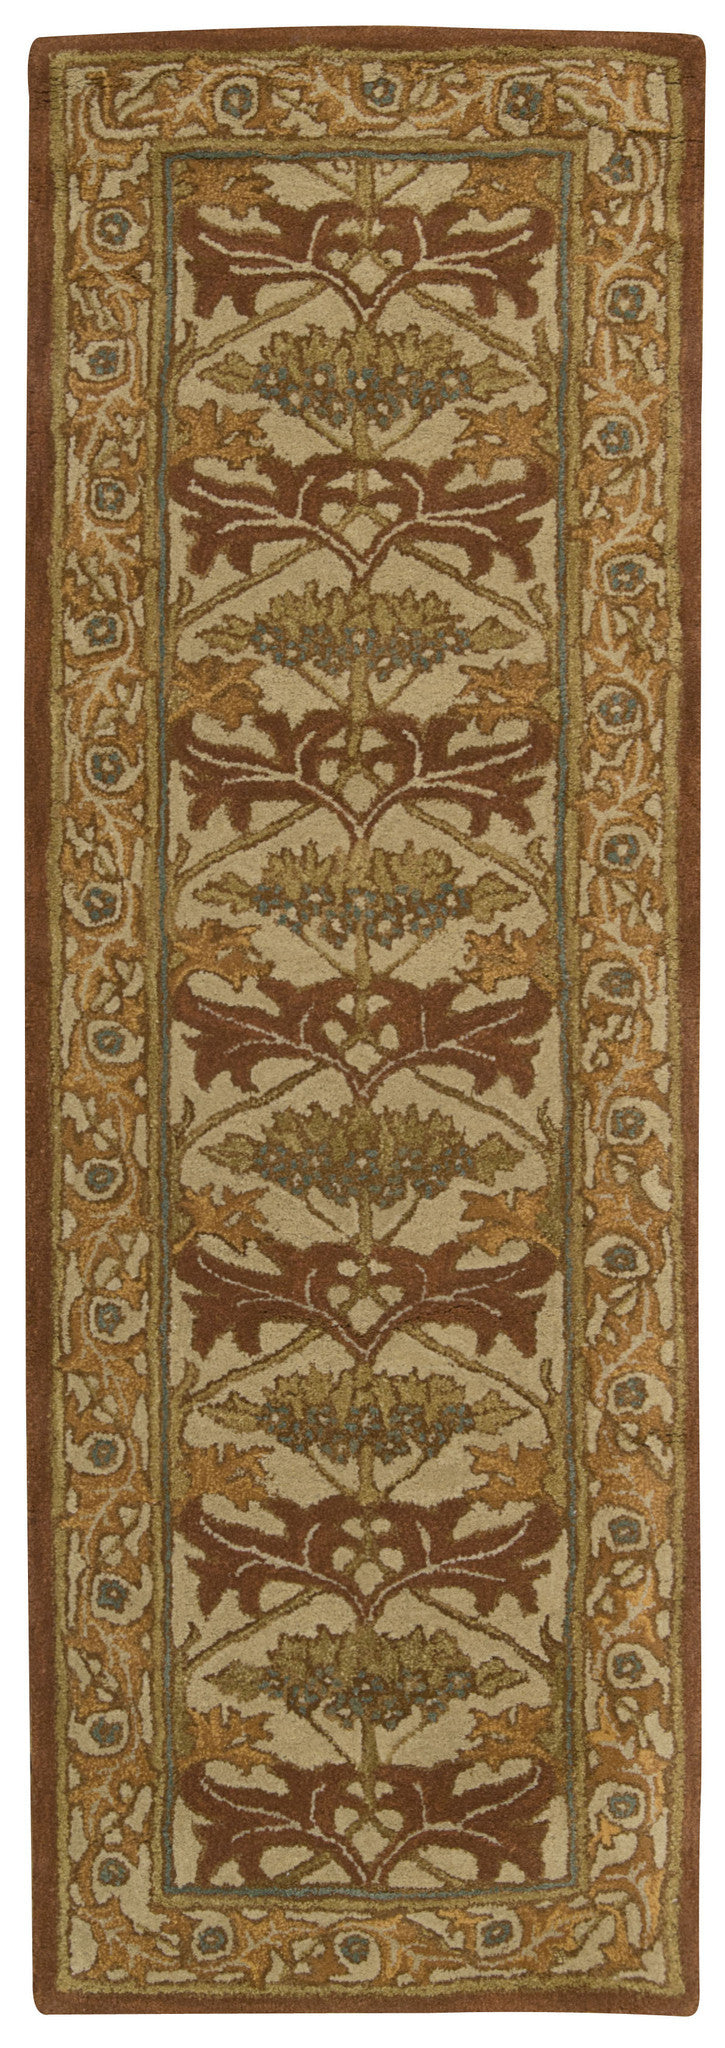 Nourison India House Beige Area Rug IH86 BGE